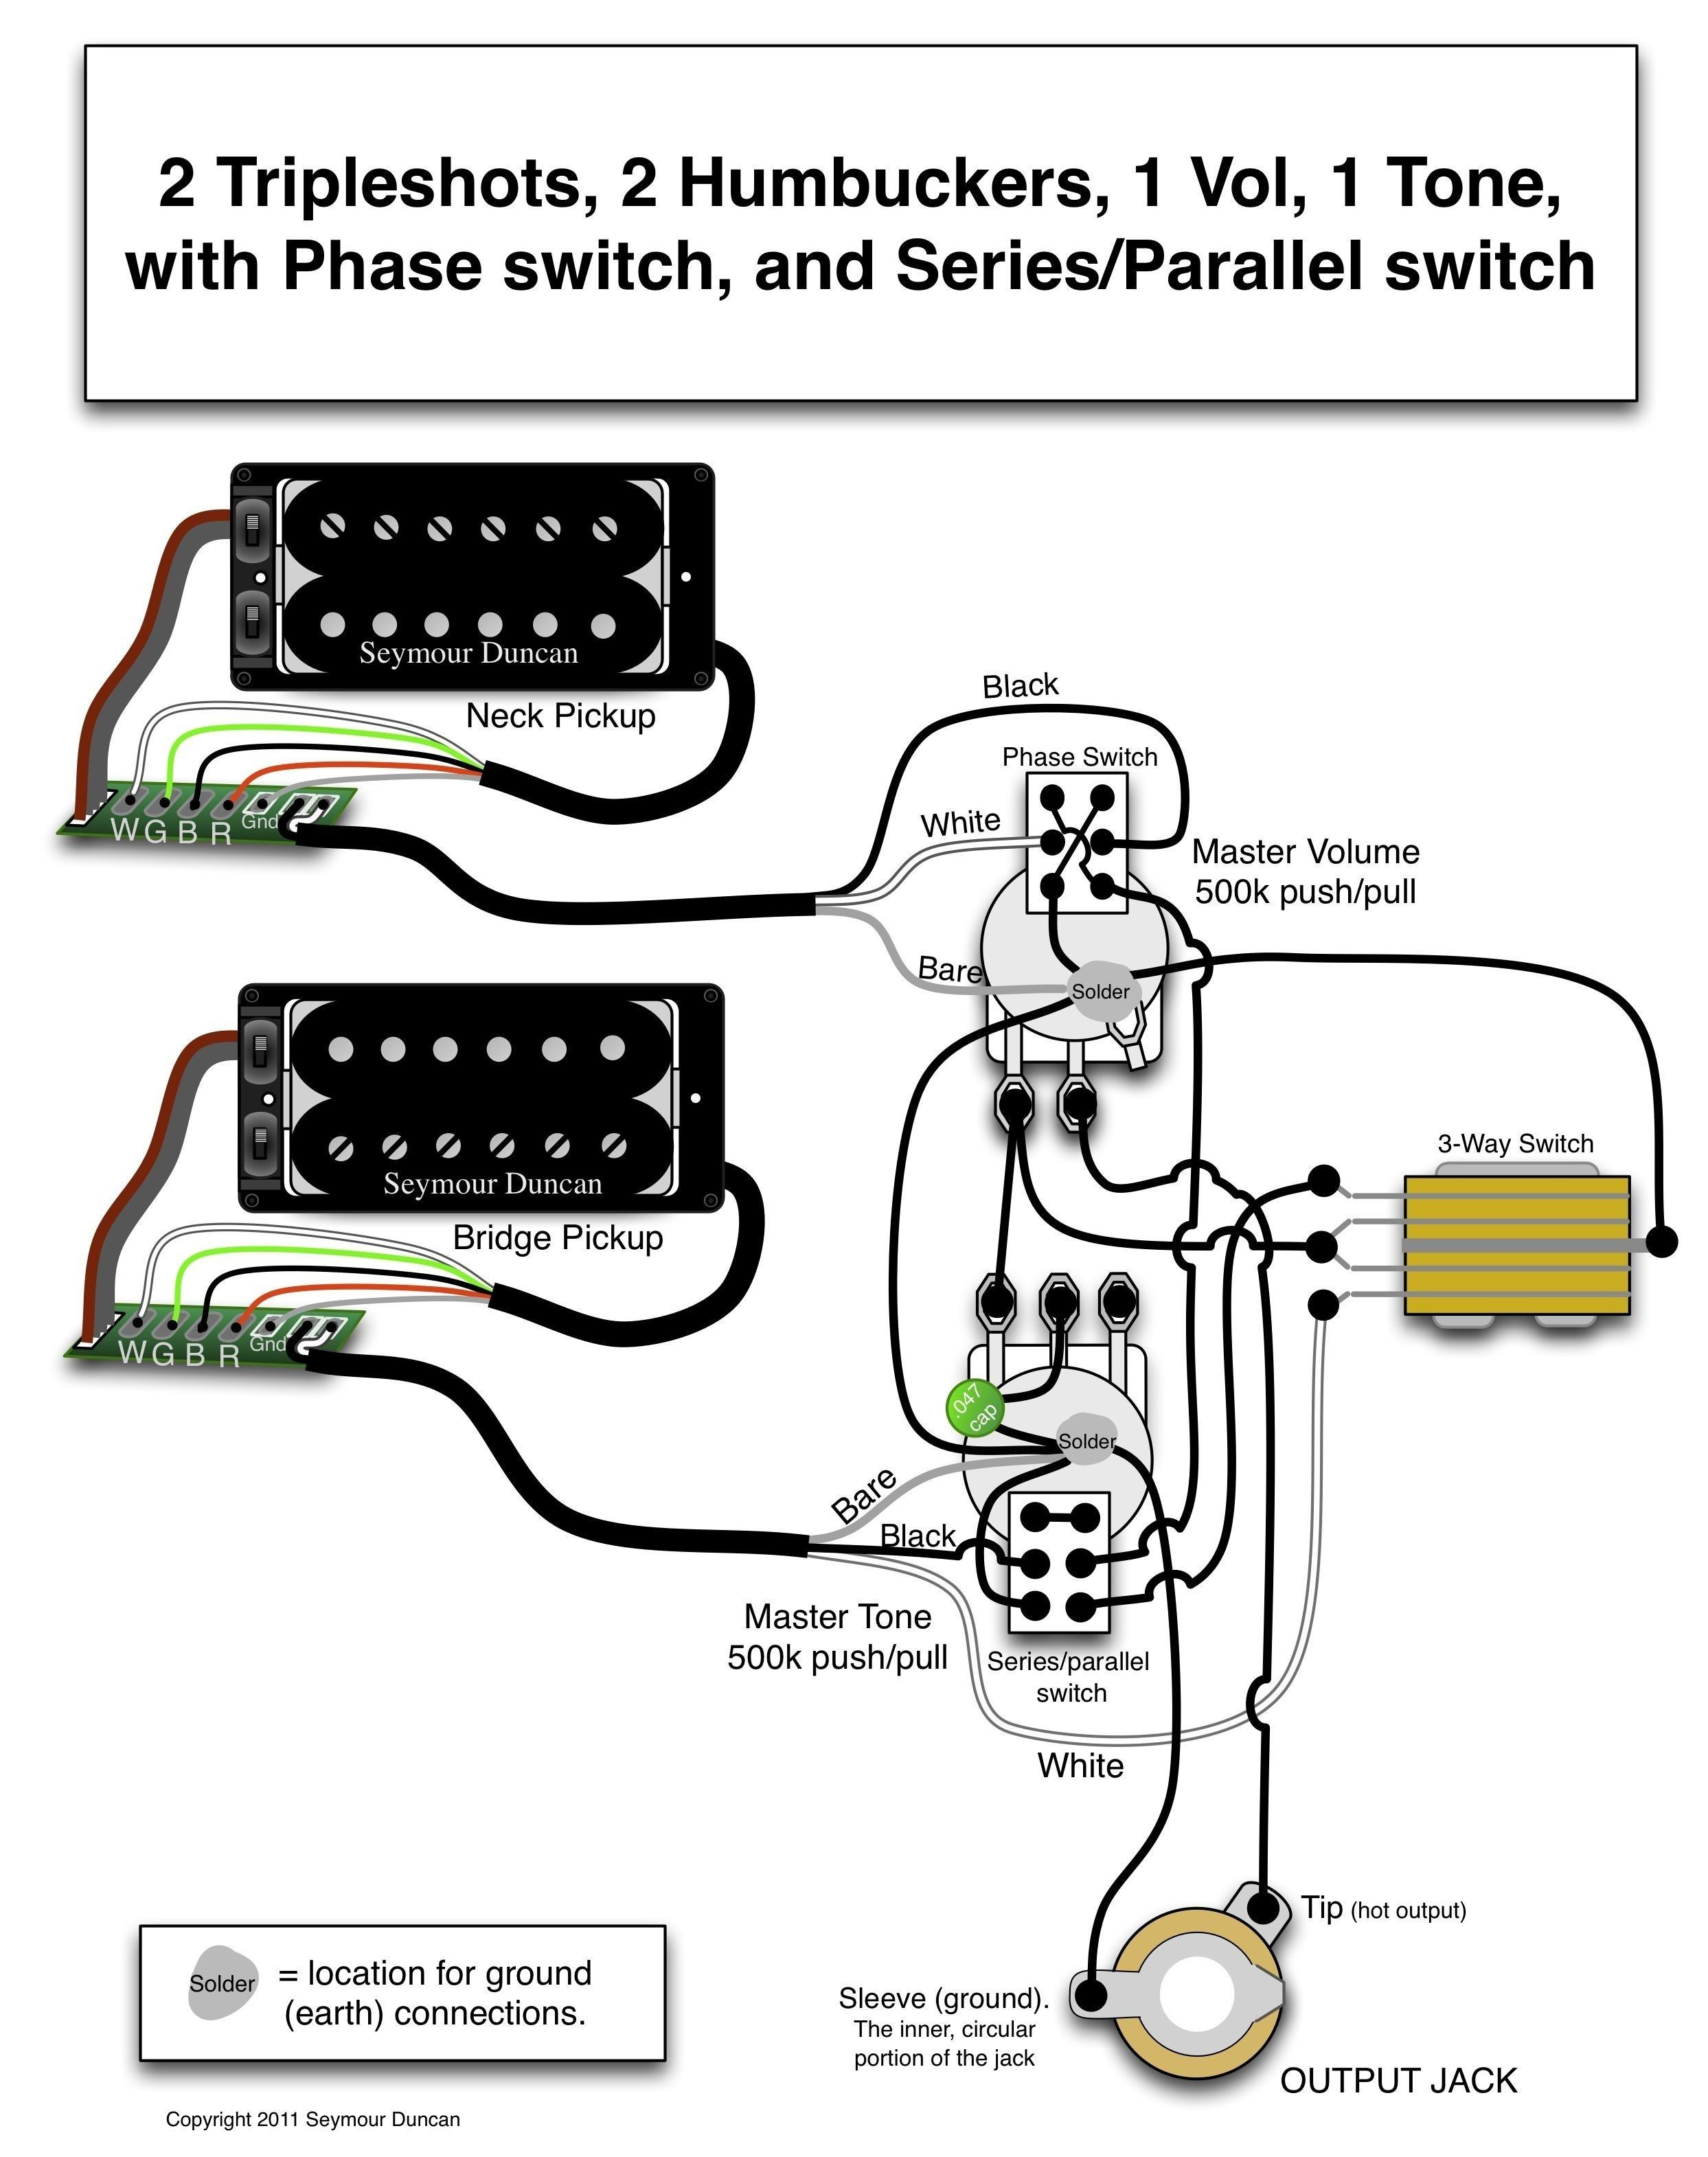 Unique Guitar Wiring Diagram 1 Humbucker 1 Volume Diagram Diagramsample Diagramtemplate Wiringdiagram Diagramchart Worksheet Wo Elektronik Gitarre Musik